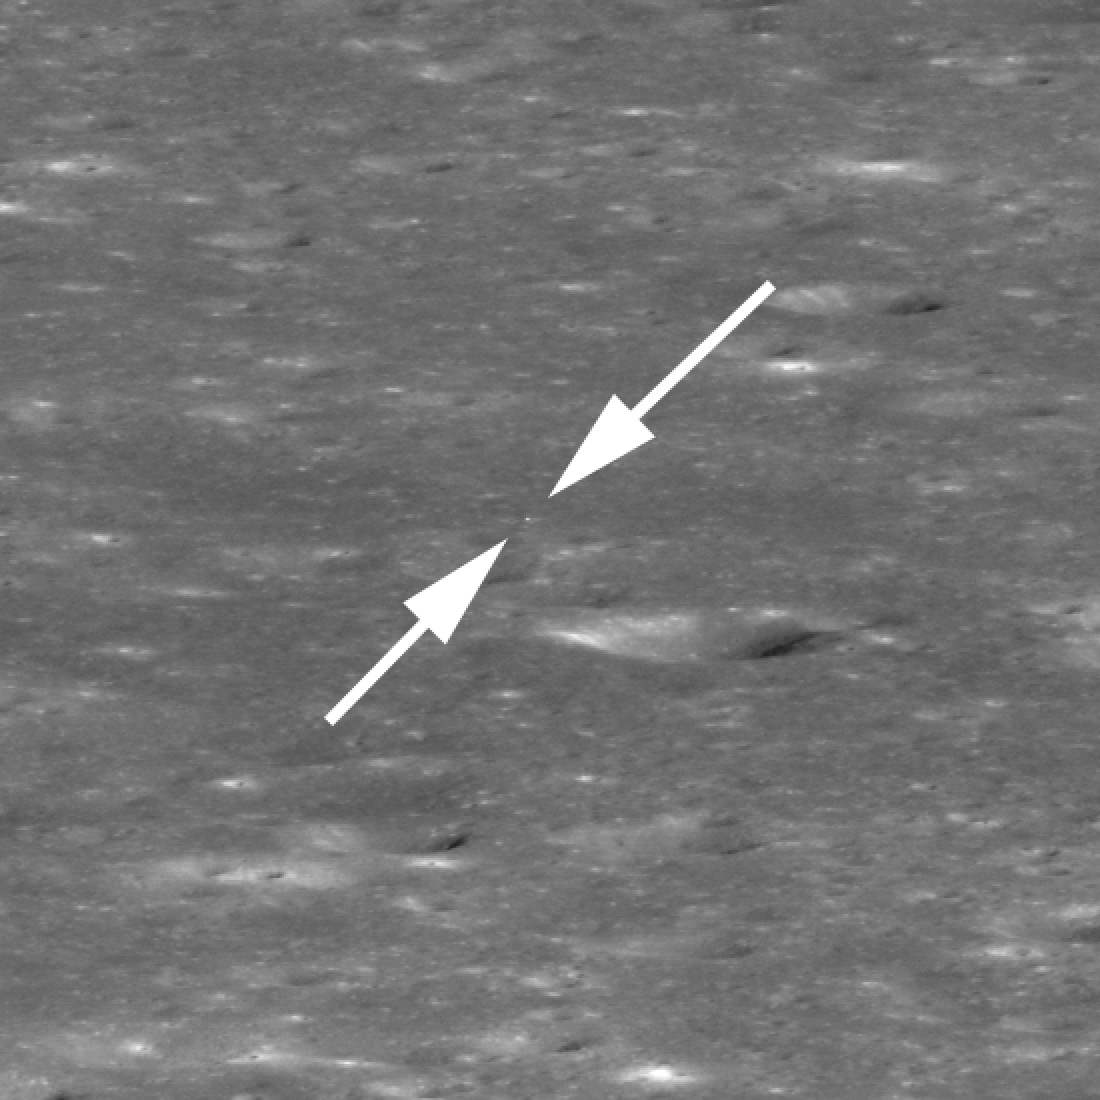 Arrows show the location of the Chang'e 4 lander in the Von Kármán crater. The rover cannot be seen in the NASA photo.